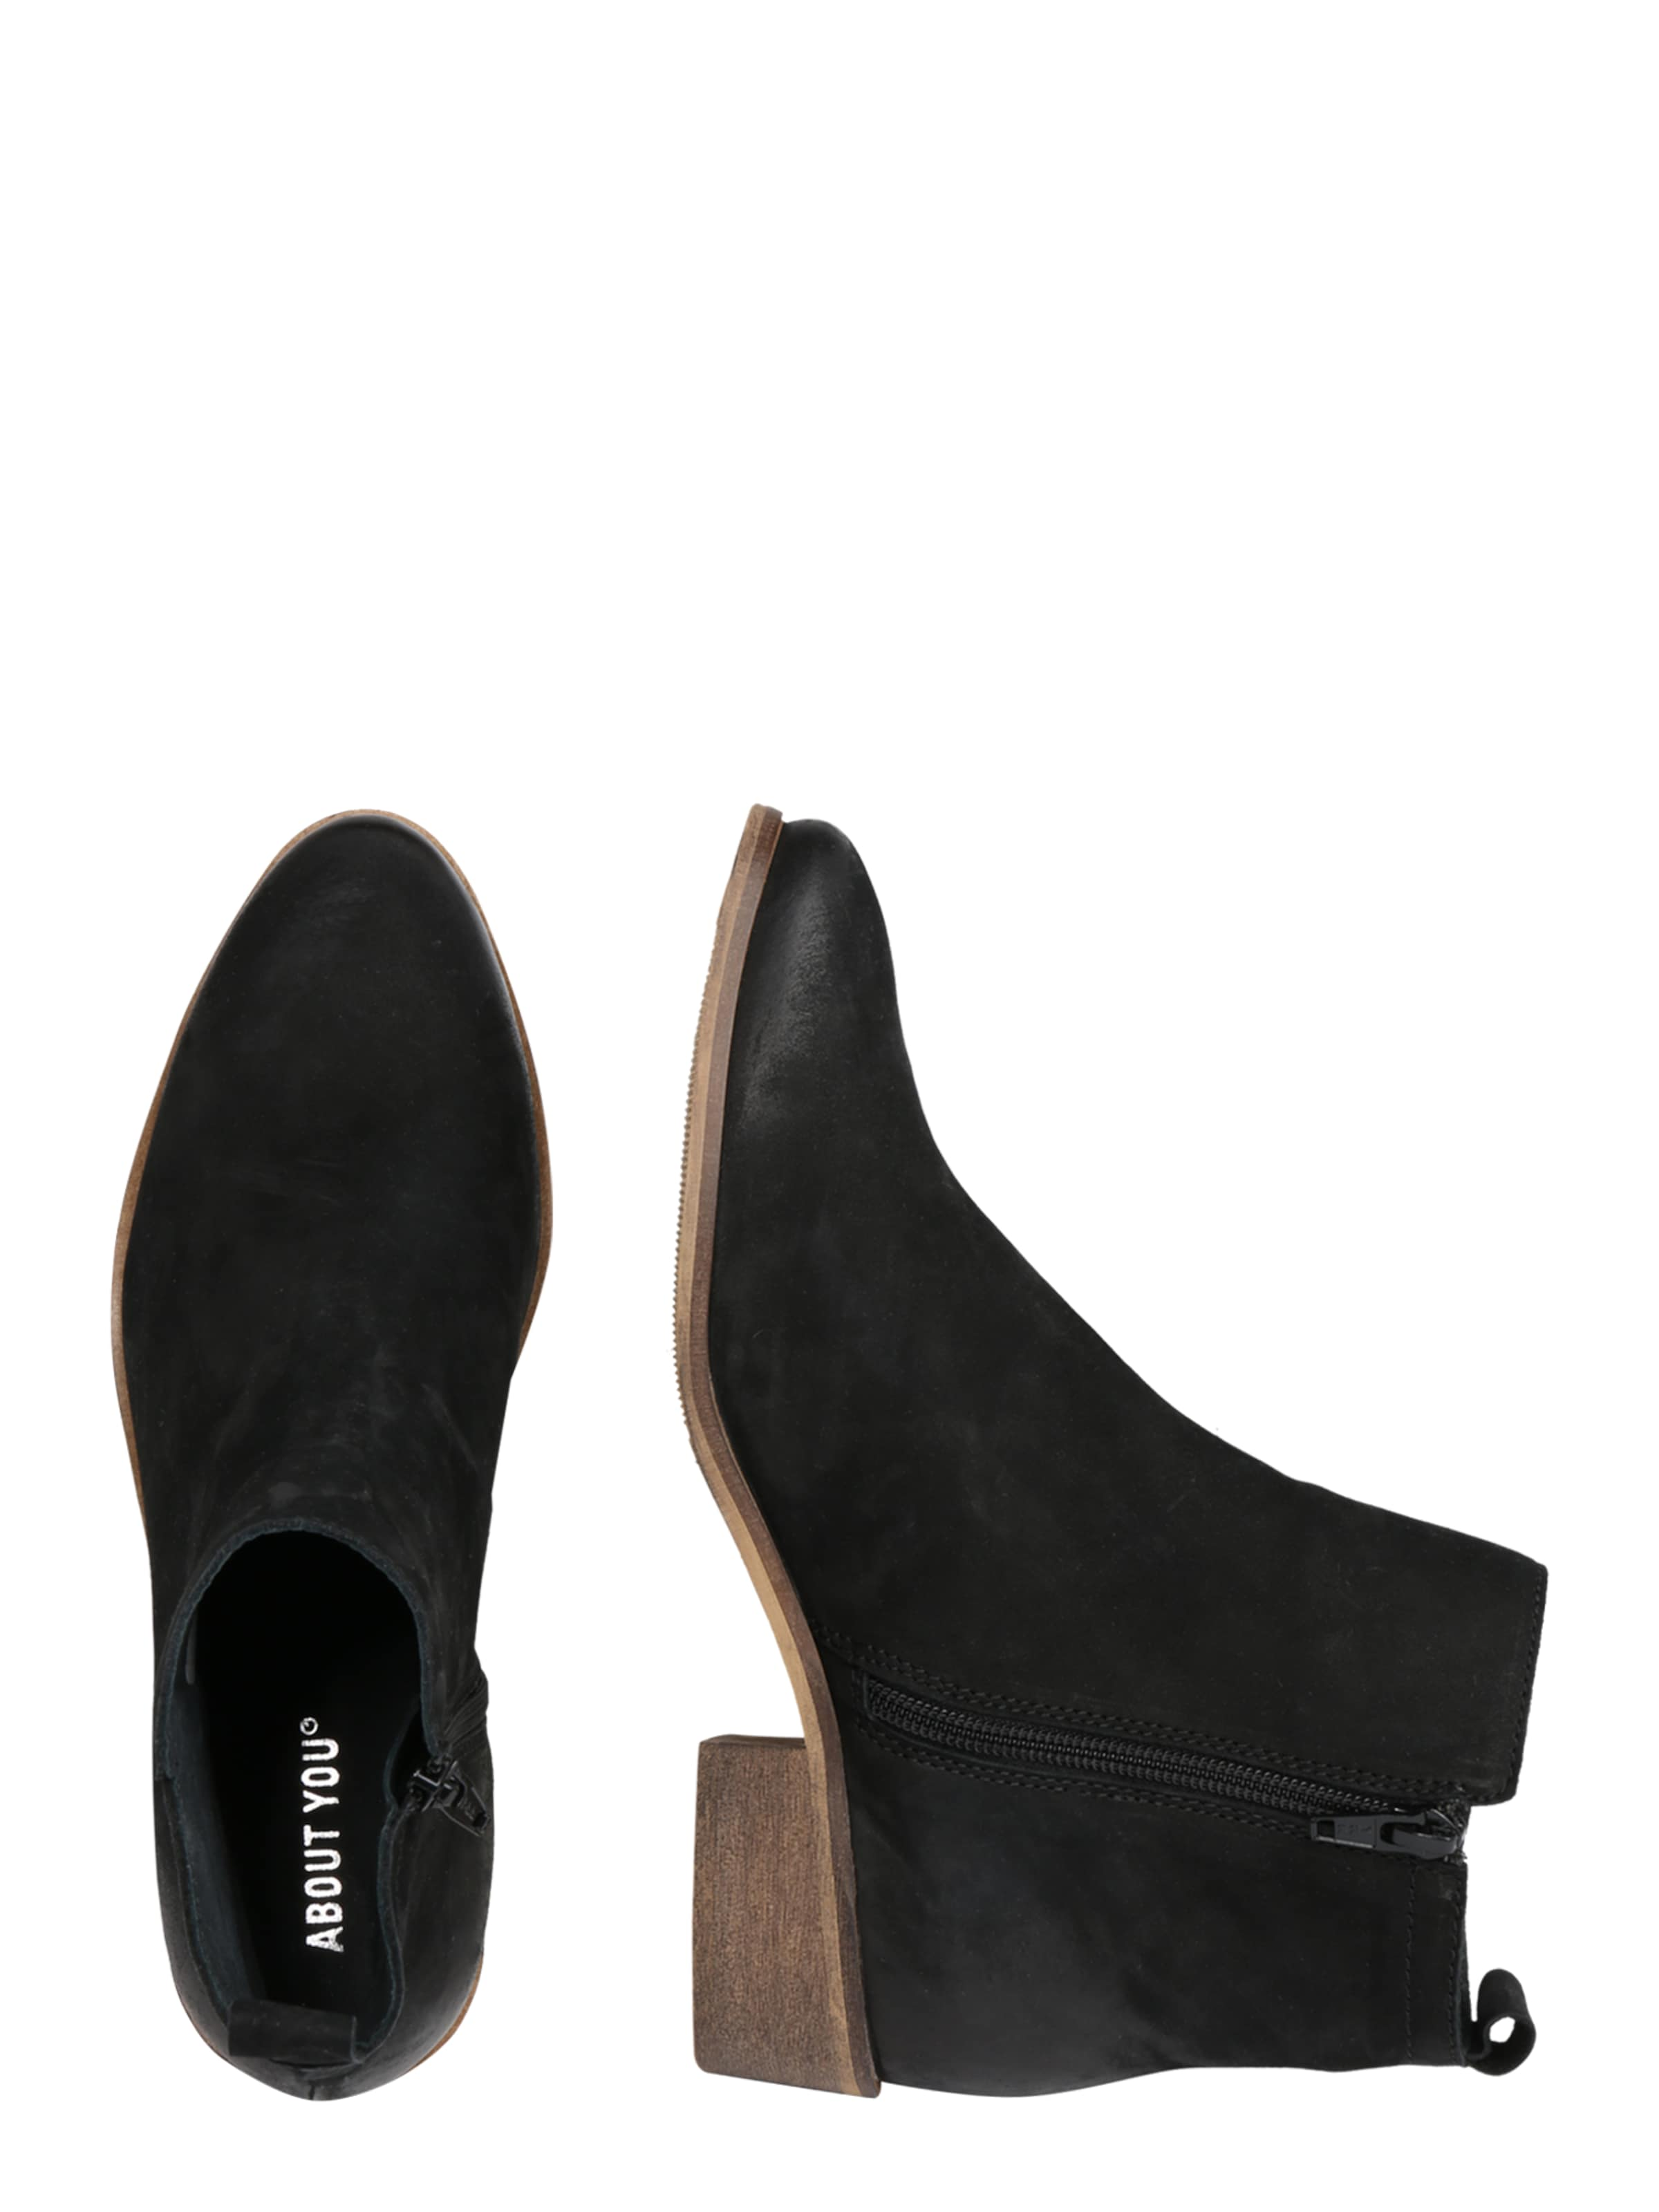 'asmin' You Schwarz Stiefelette About In b6f7Ygyv